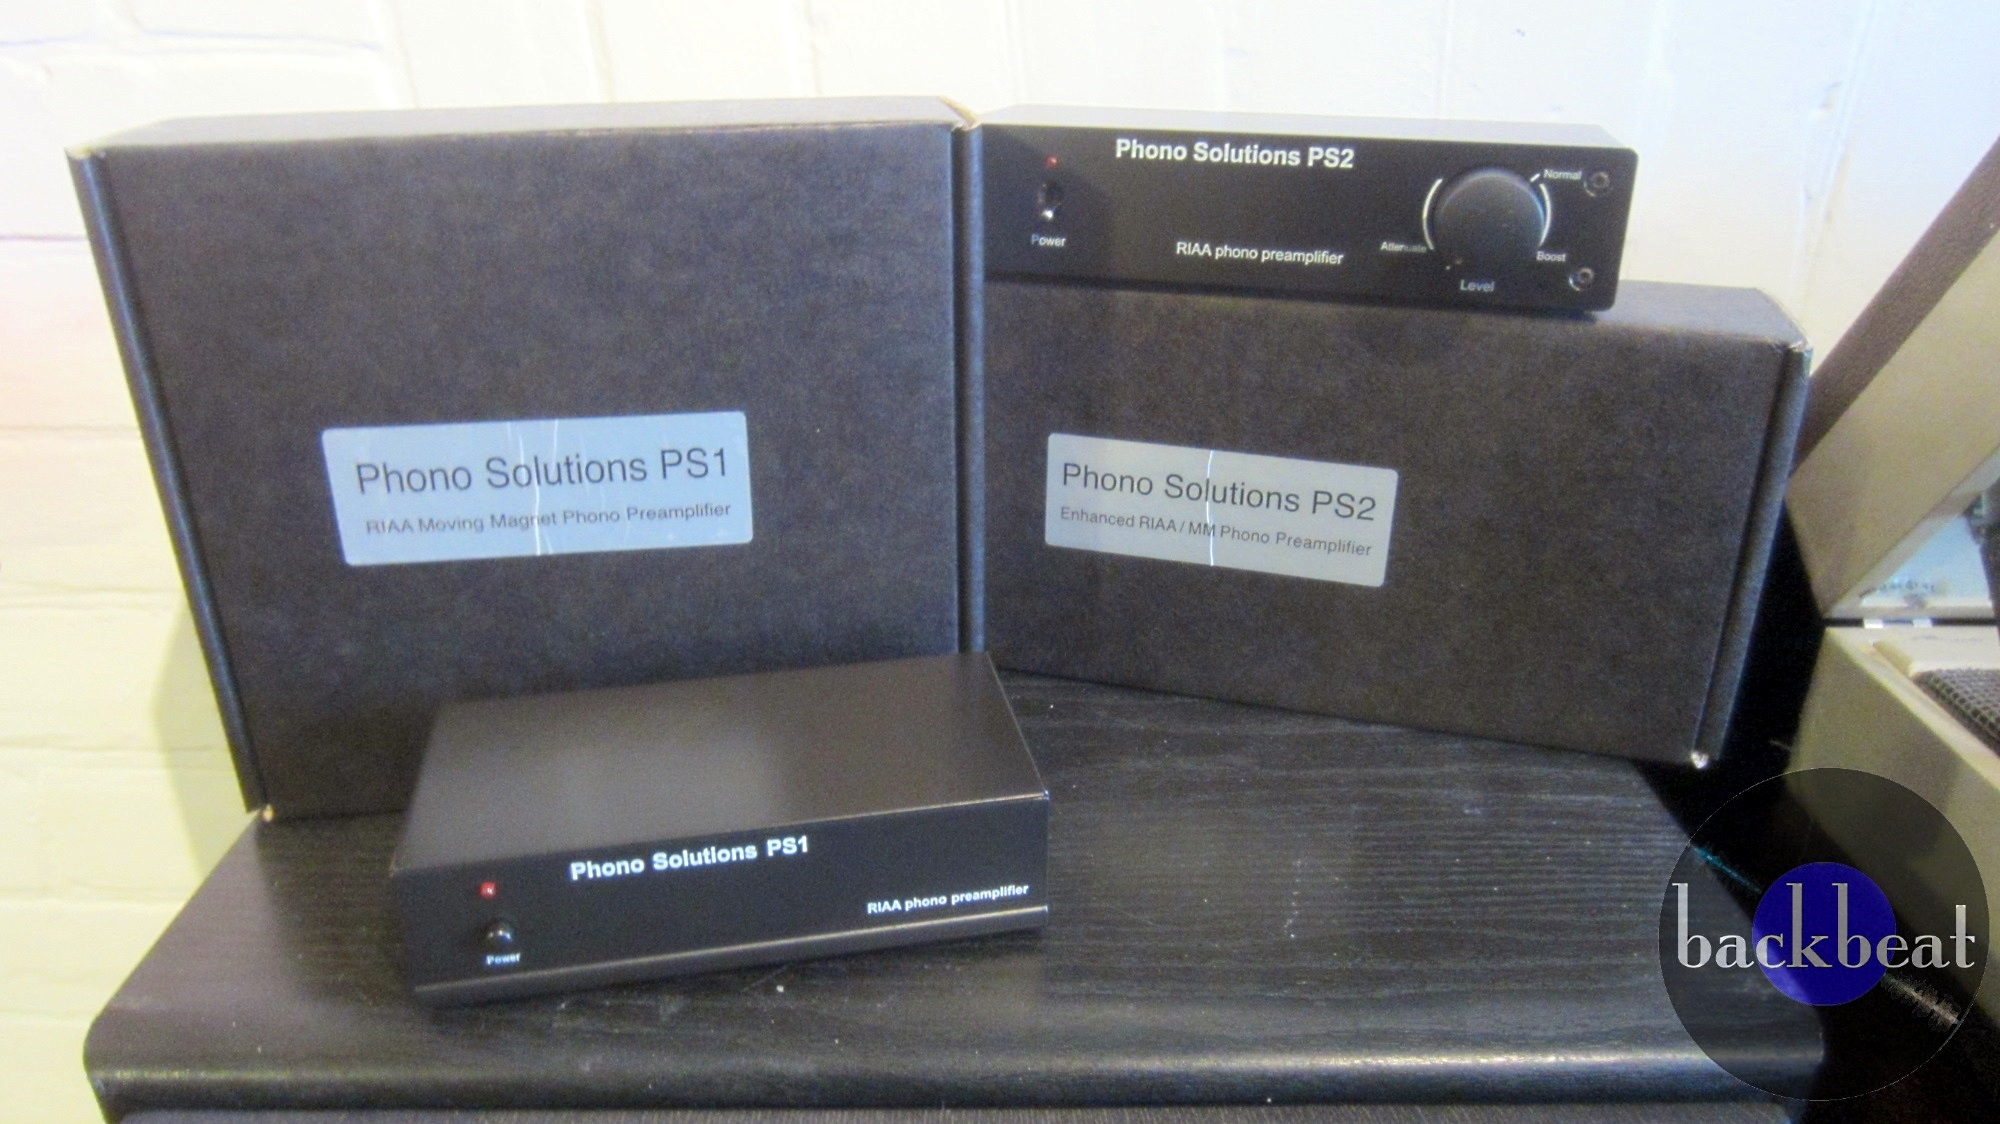 Phono Solutions Ps2 Phono Preamp Backbeat Books And Music